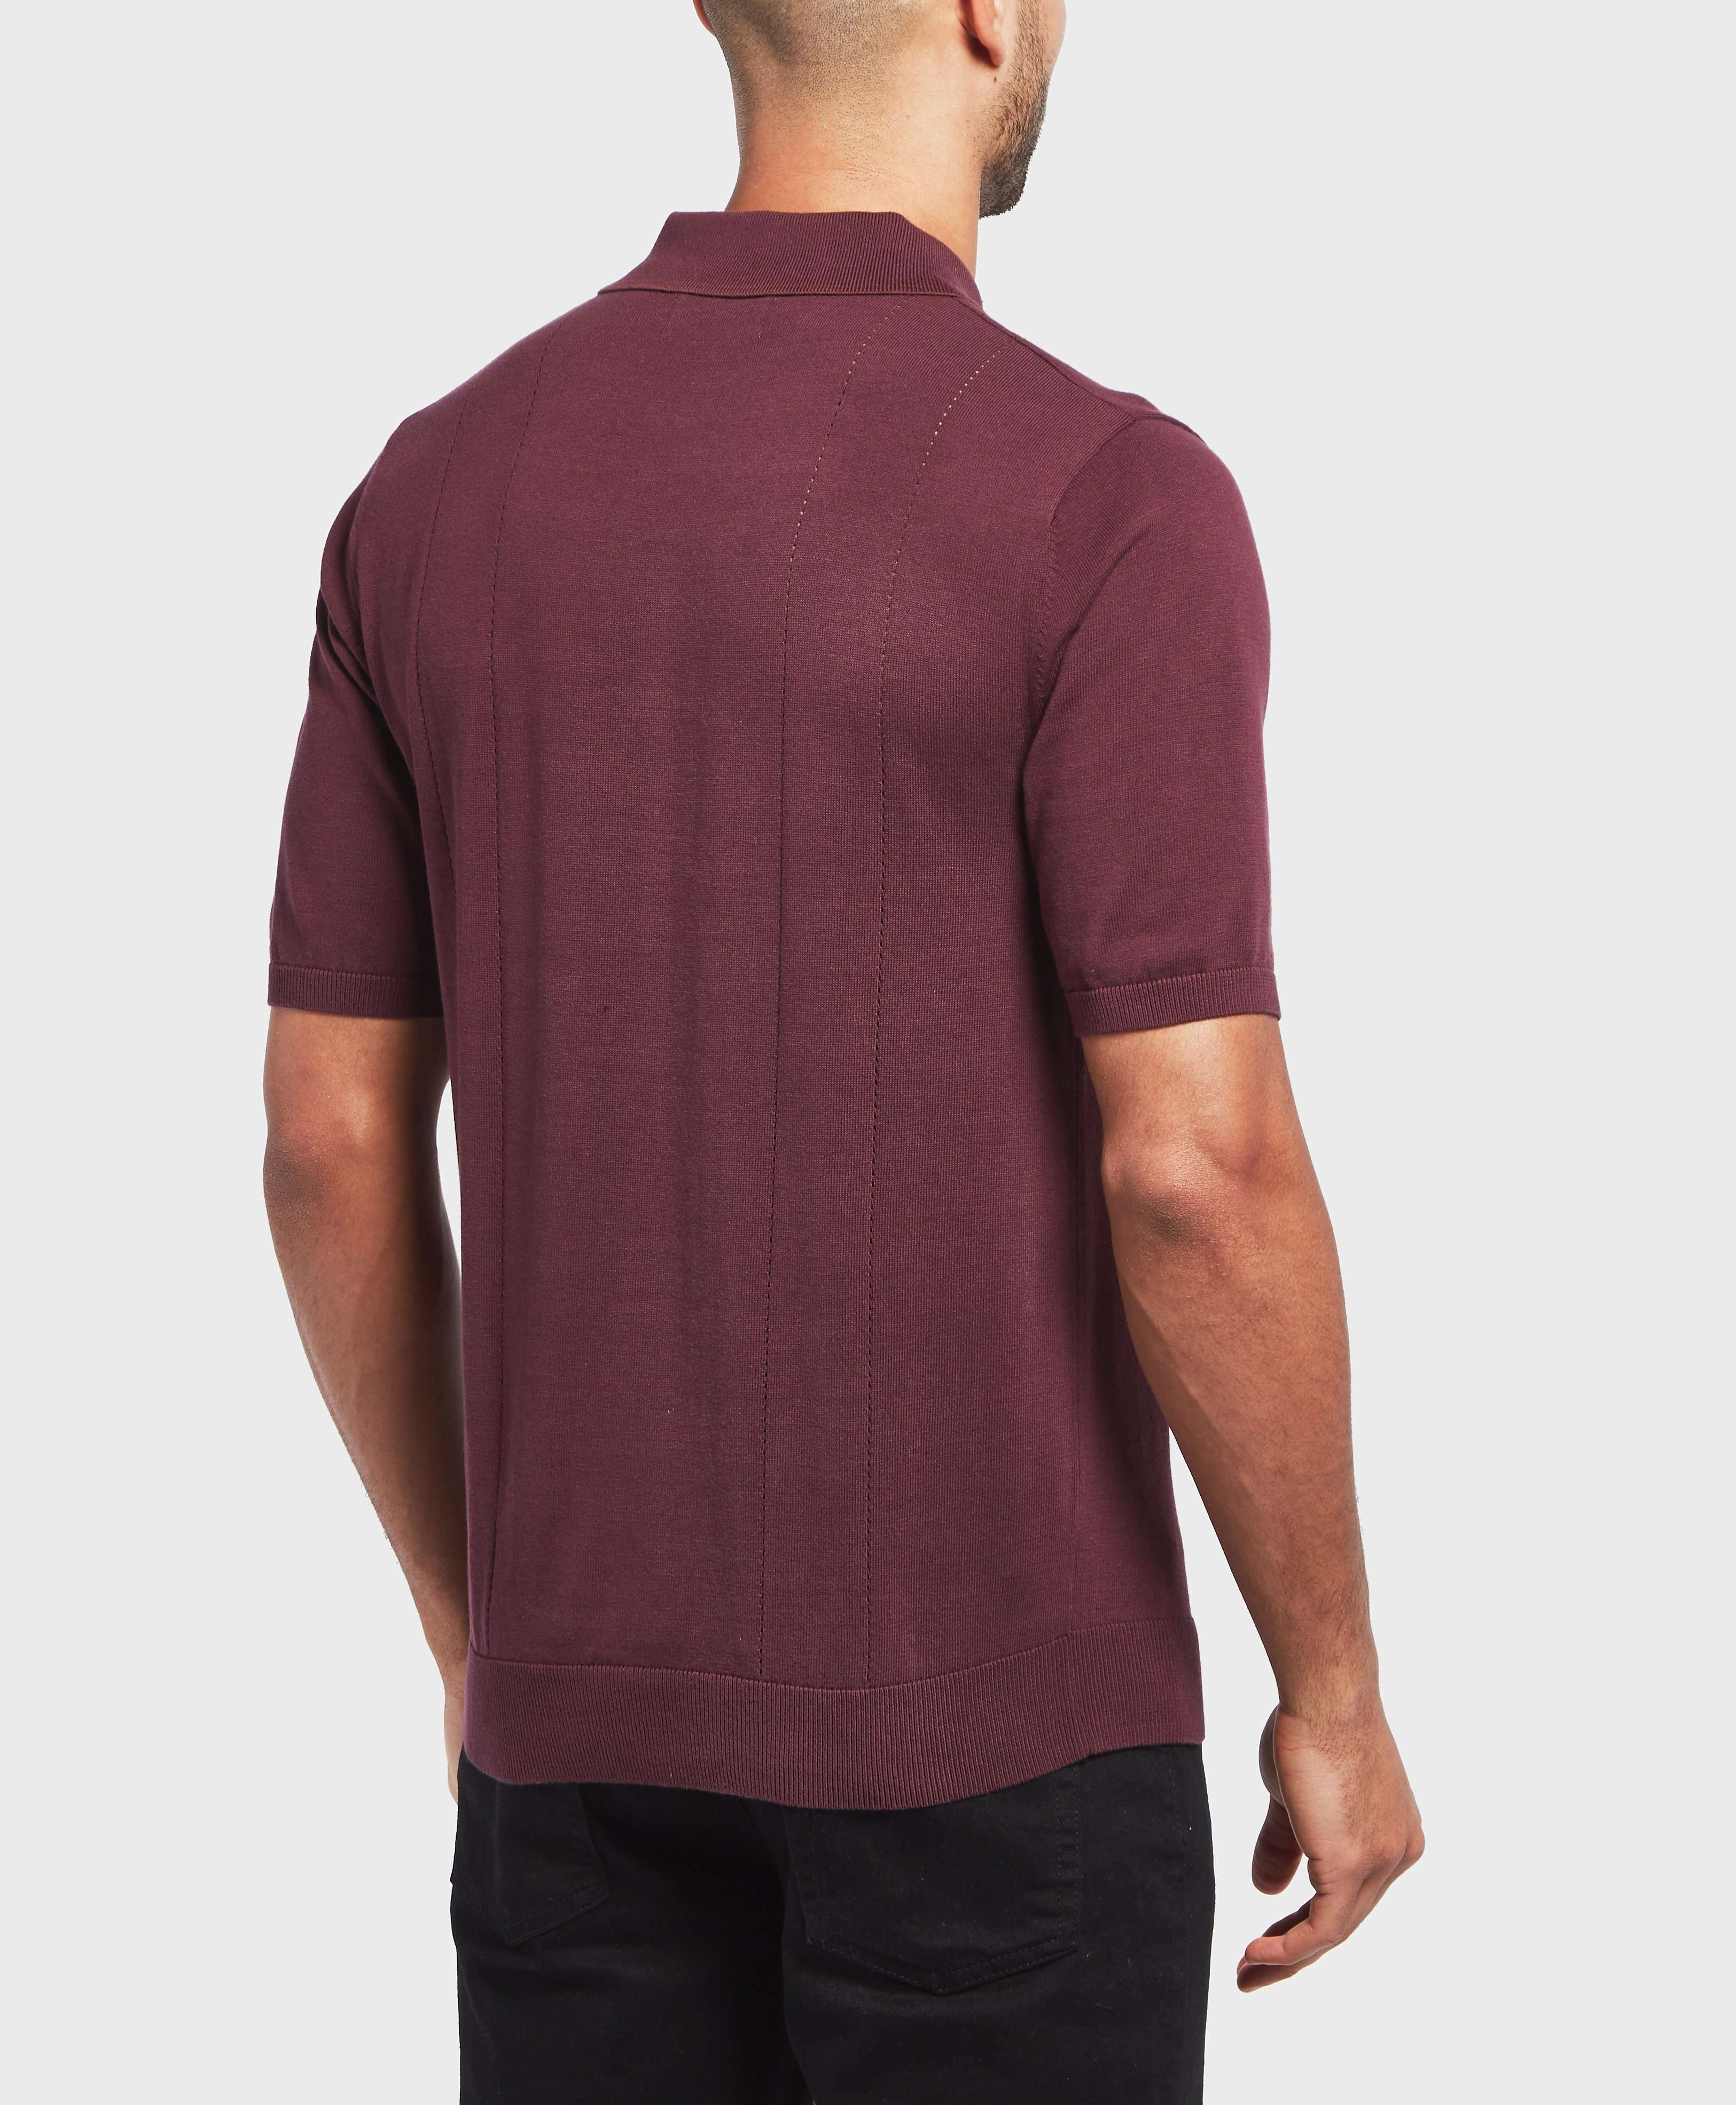 Fred Perry x Miles Kane Short Sleeve Polo Shirt - Exclusive